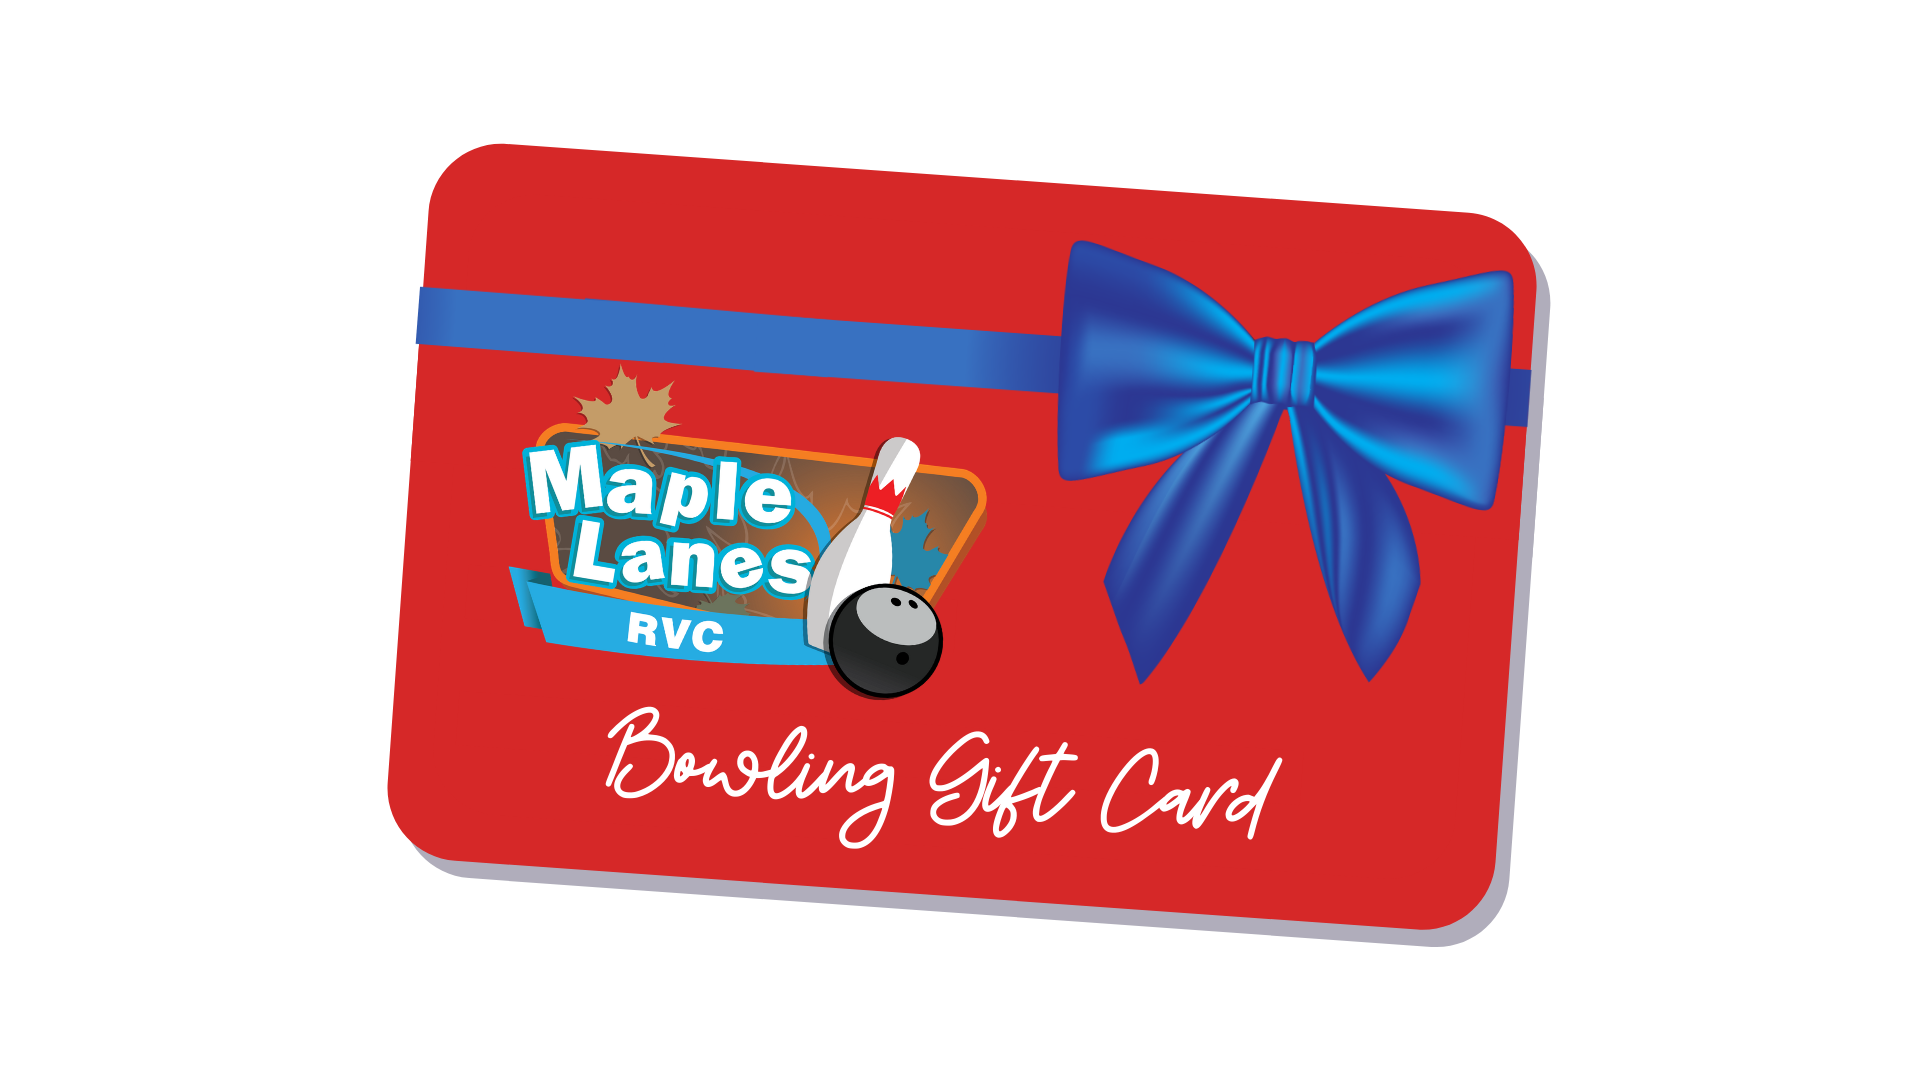 Give the Gift of Bowling with a Gift Card to Maple Lanes RVC!  For every $50 purchased, receive a $10 complimentary gift card.